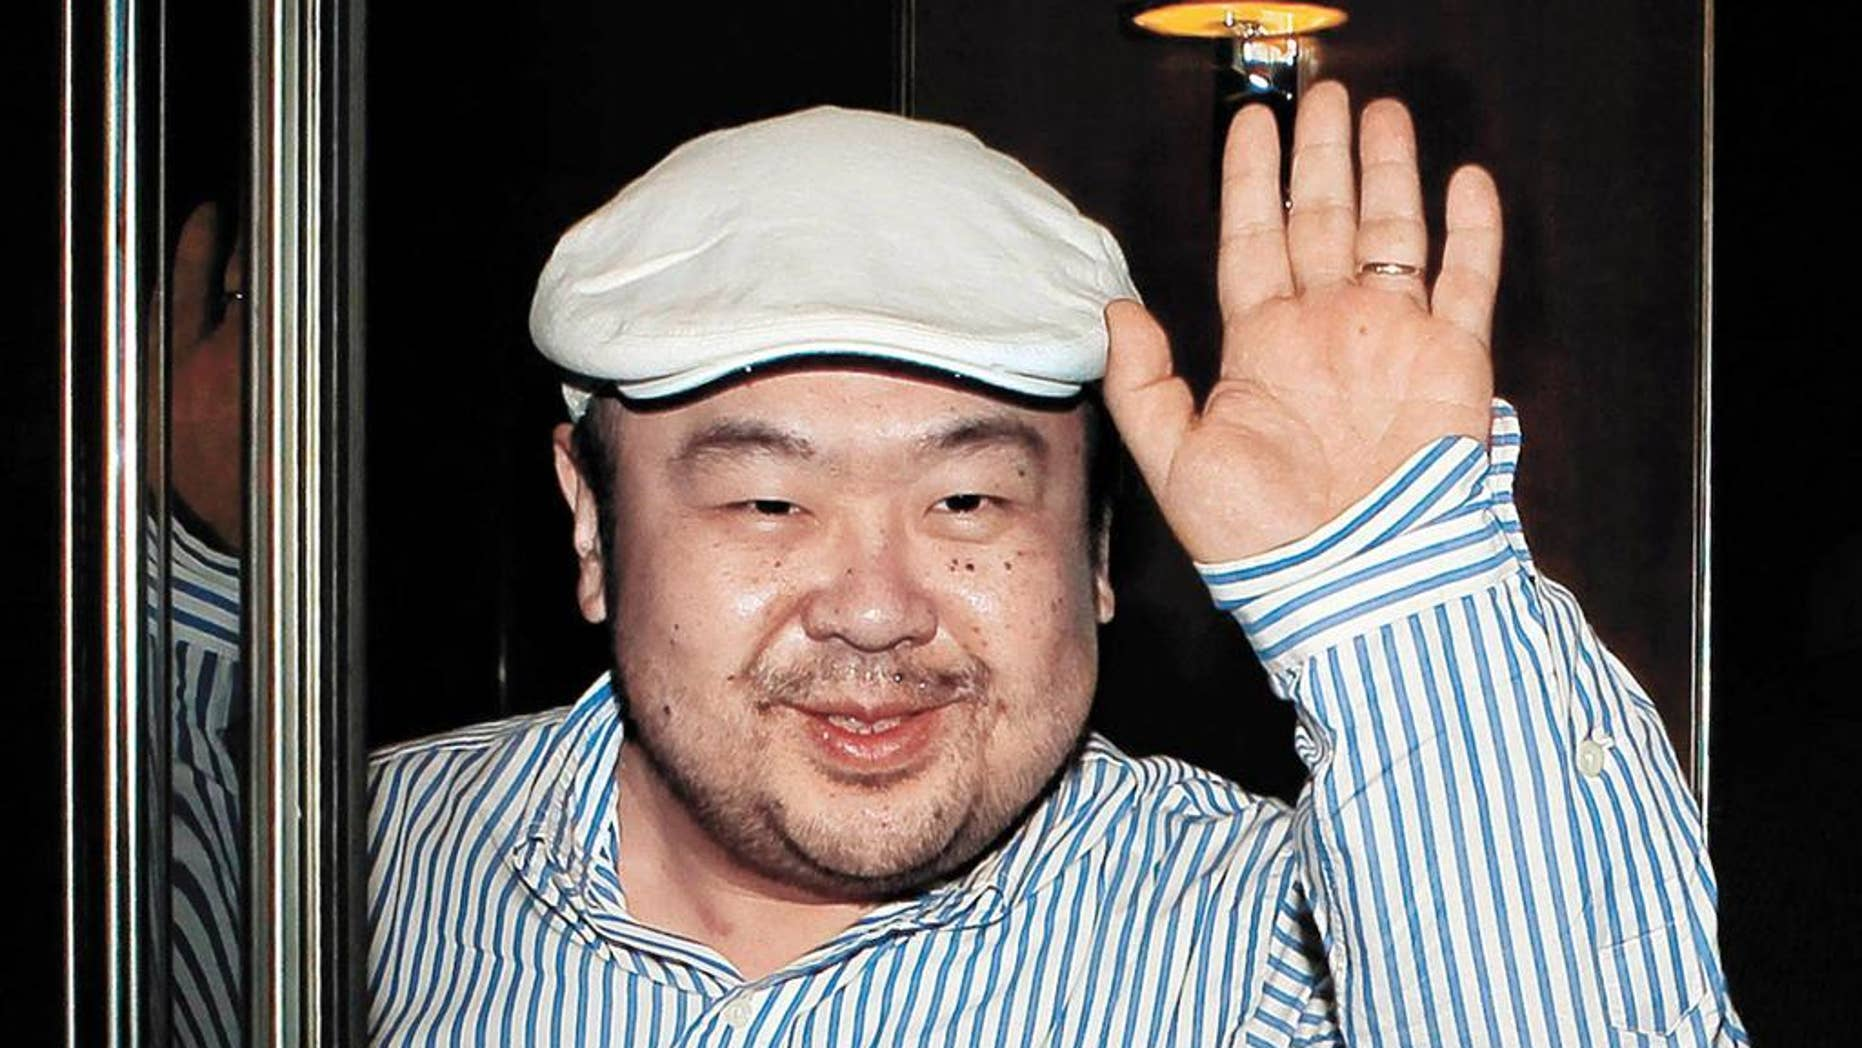 FILE - In this June 4, 2010, file photo, dressed in jeans and blue suede loafers, Kim Jong Nam, the eldest son of then North Korean leader Kim Jong Il, waves after his first-ever interview with South Korean media in Macau. Kim was assassinated at an airport in Kuala Lumpur, telling medical workers before he died that he had been attacked with a chemical spray a Malaysian official said Tuesday. (Shin In-seop/JoongAng Ilbo via AP, File)